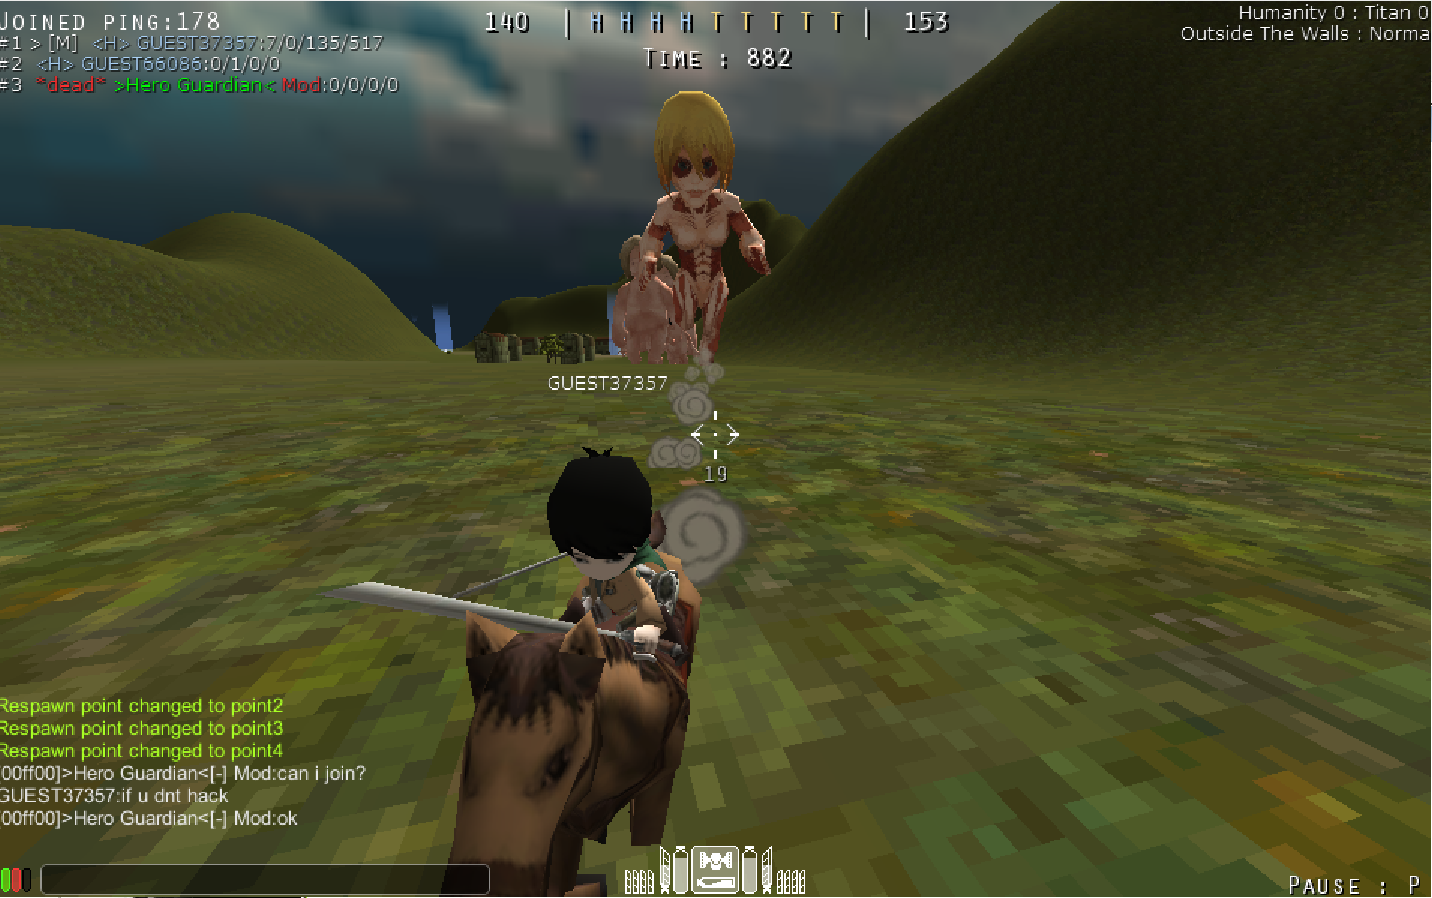 How to attack on titan tribute game pc download.